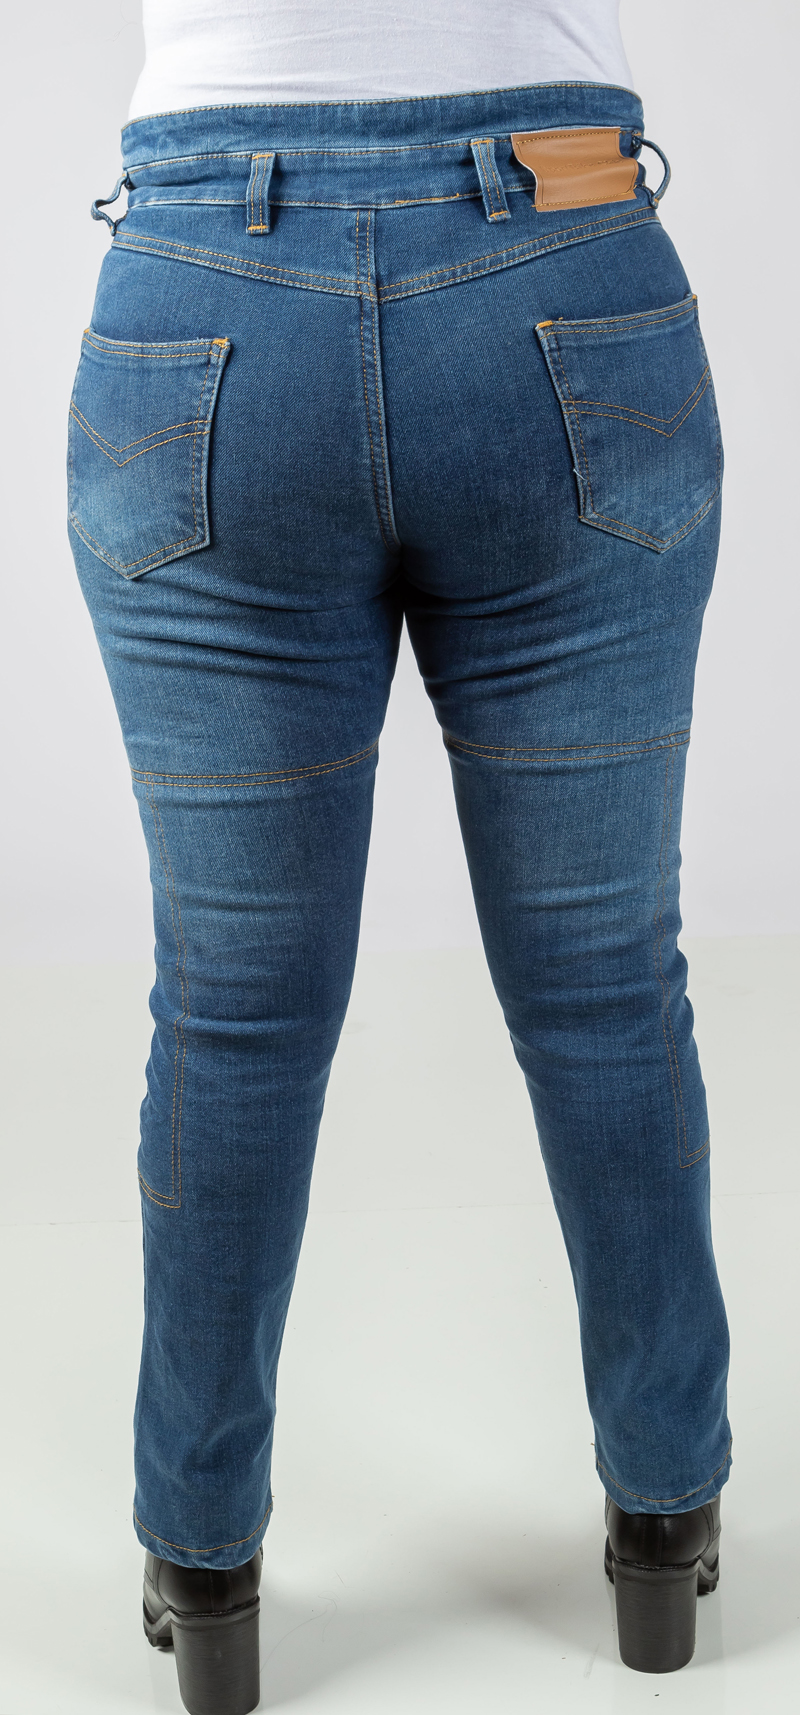 Women's Favorite Riding Gear, Products, and Accessories_jeans